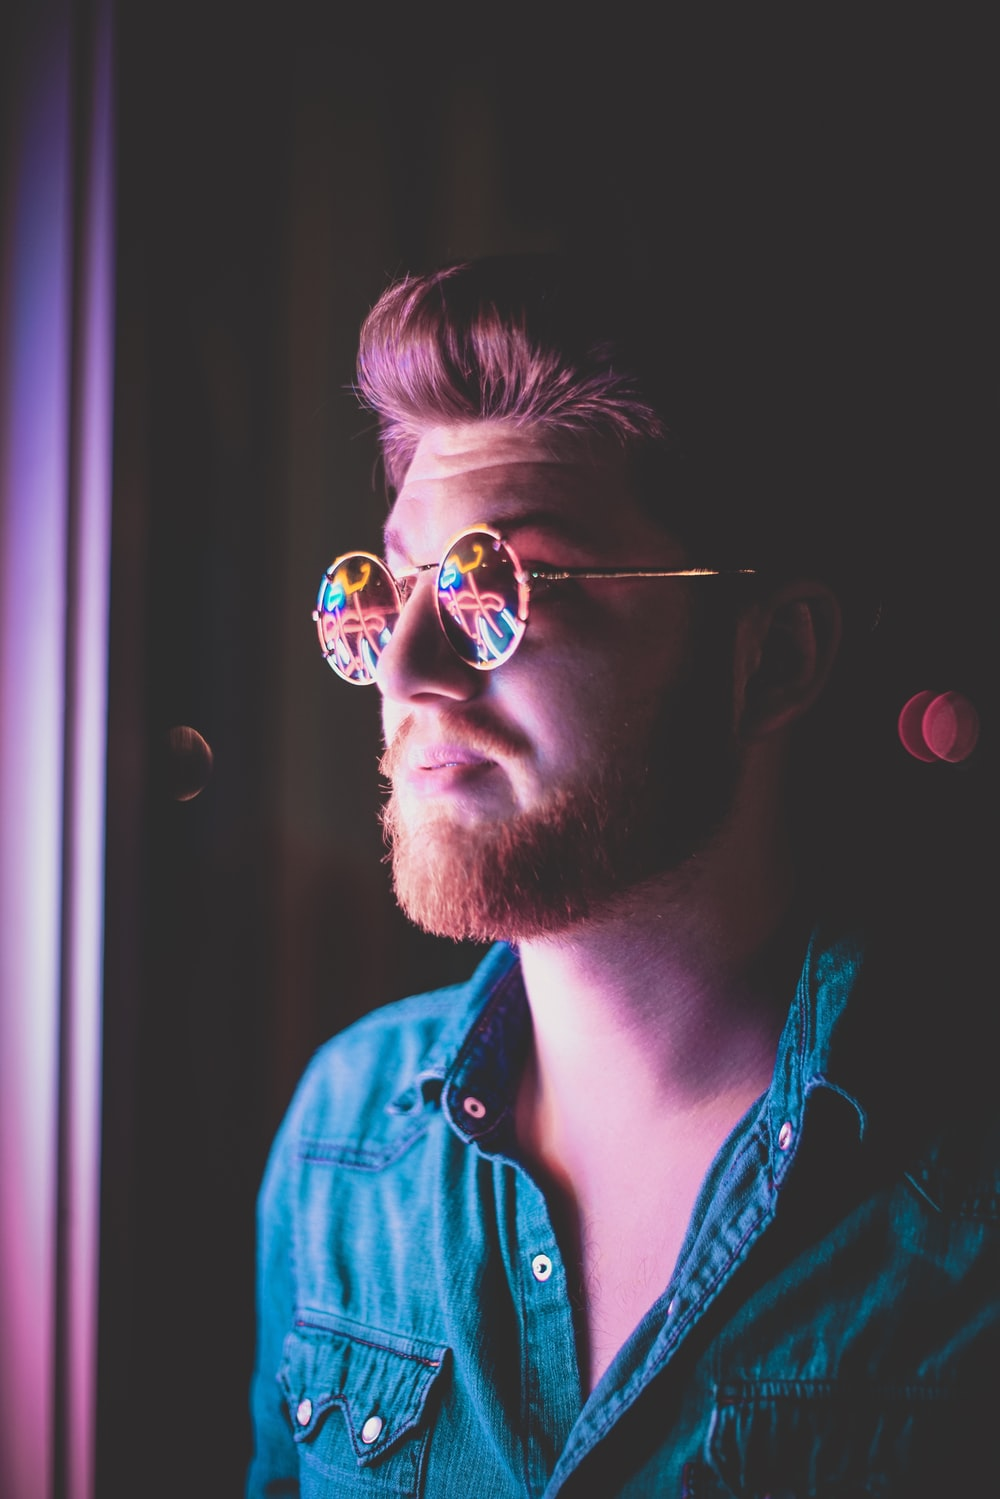 man wearing sunglasses at dim lighted room